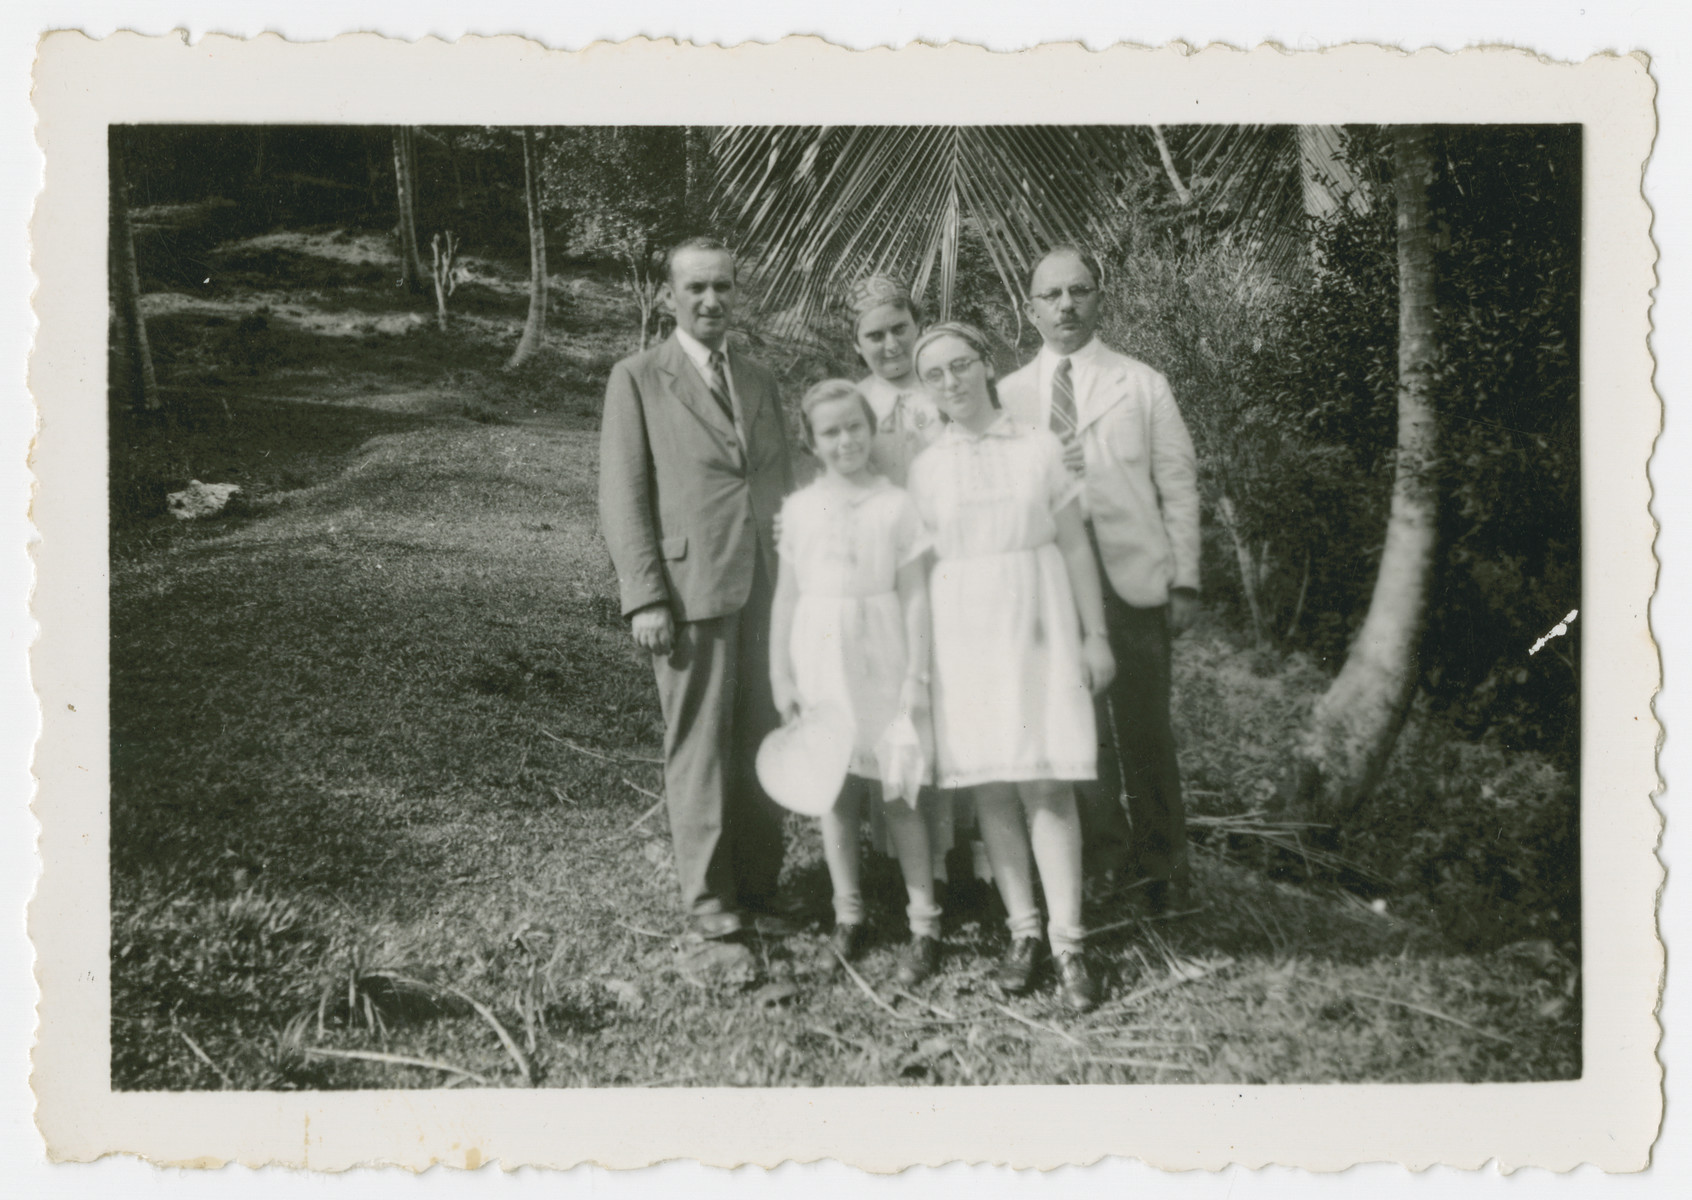 The Tauscher family poses outside in Trinidad where they arrived as refugees.  From left to right are [possibly Erich], Alice Tauscher, Bertha Tauscher, Trudie Tauscher and Victor Stecher.